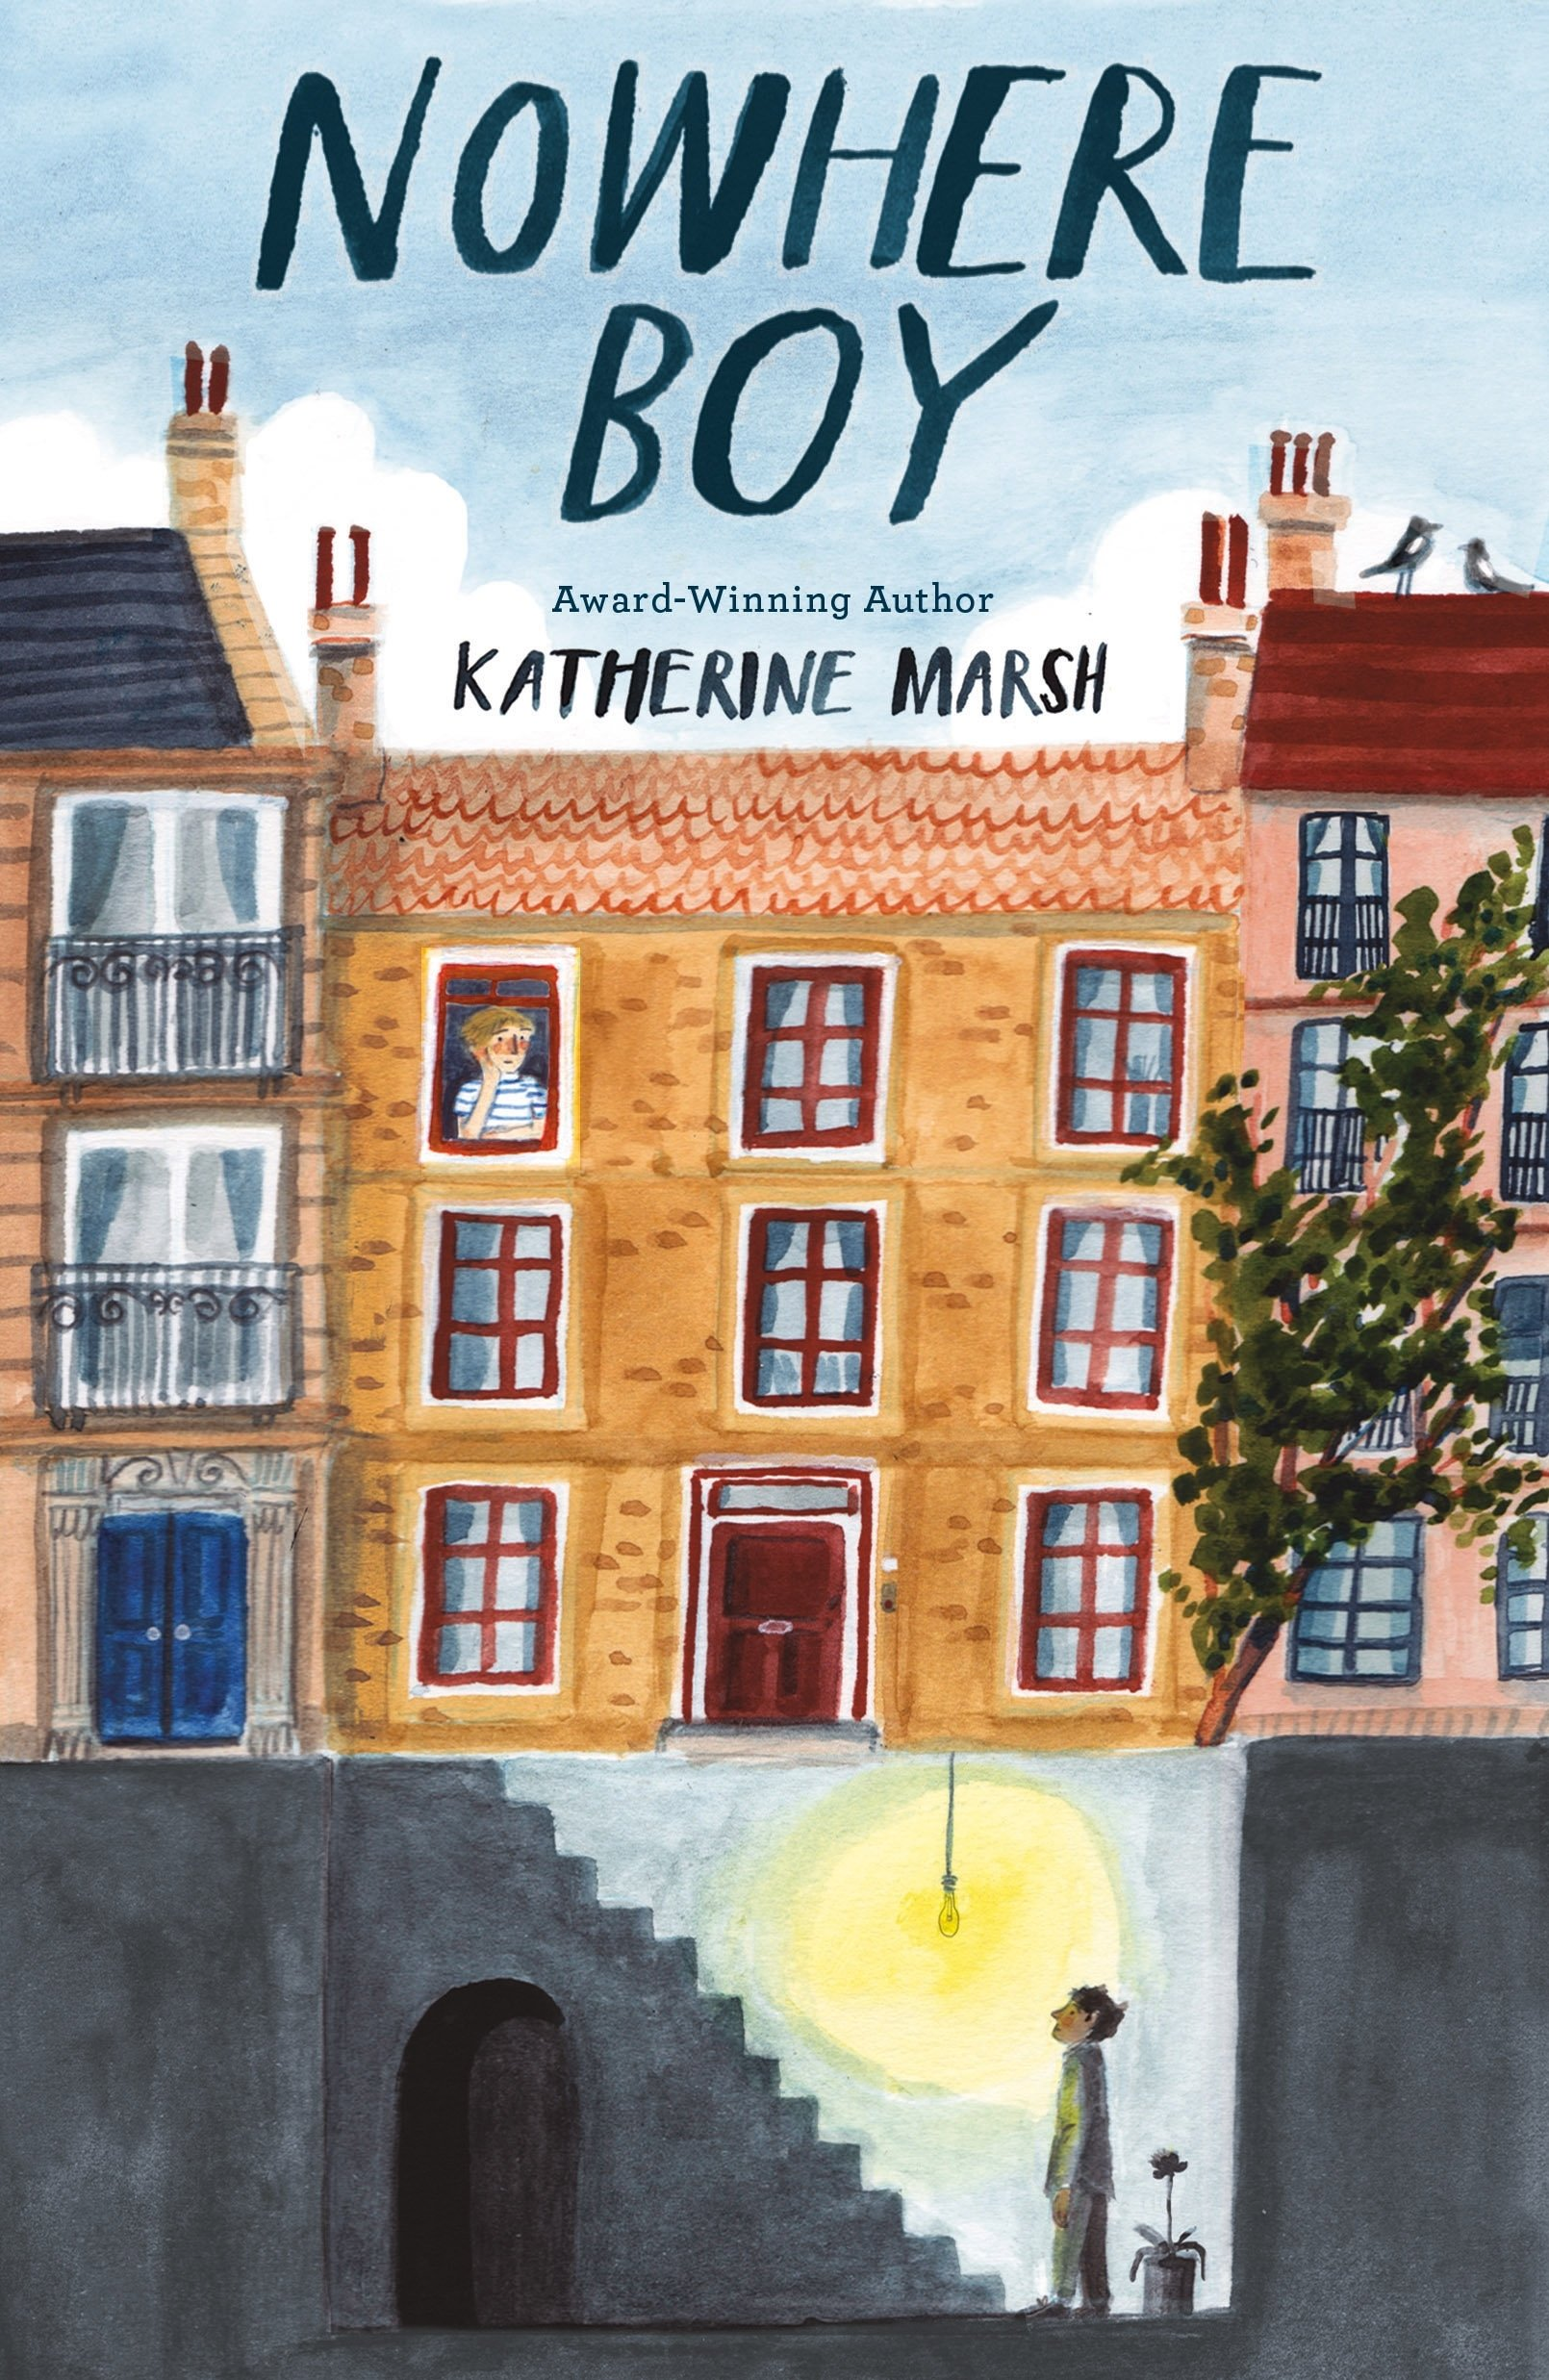 Cover art for the book entitled Nowhere Boy